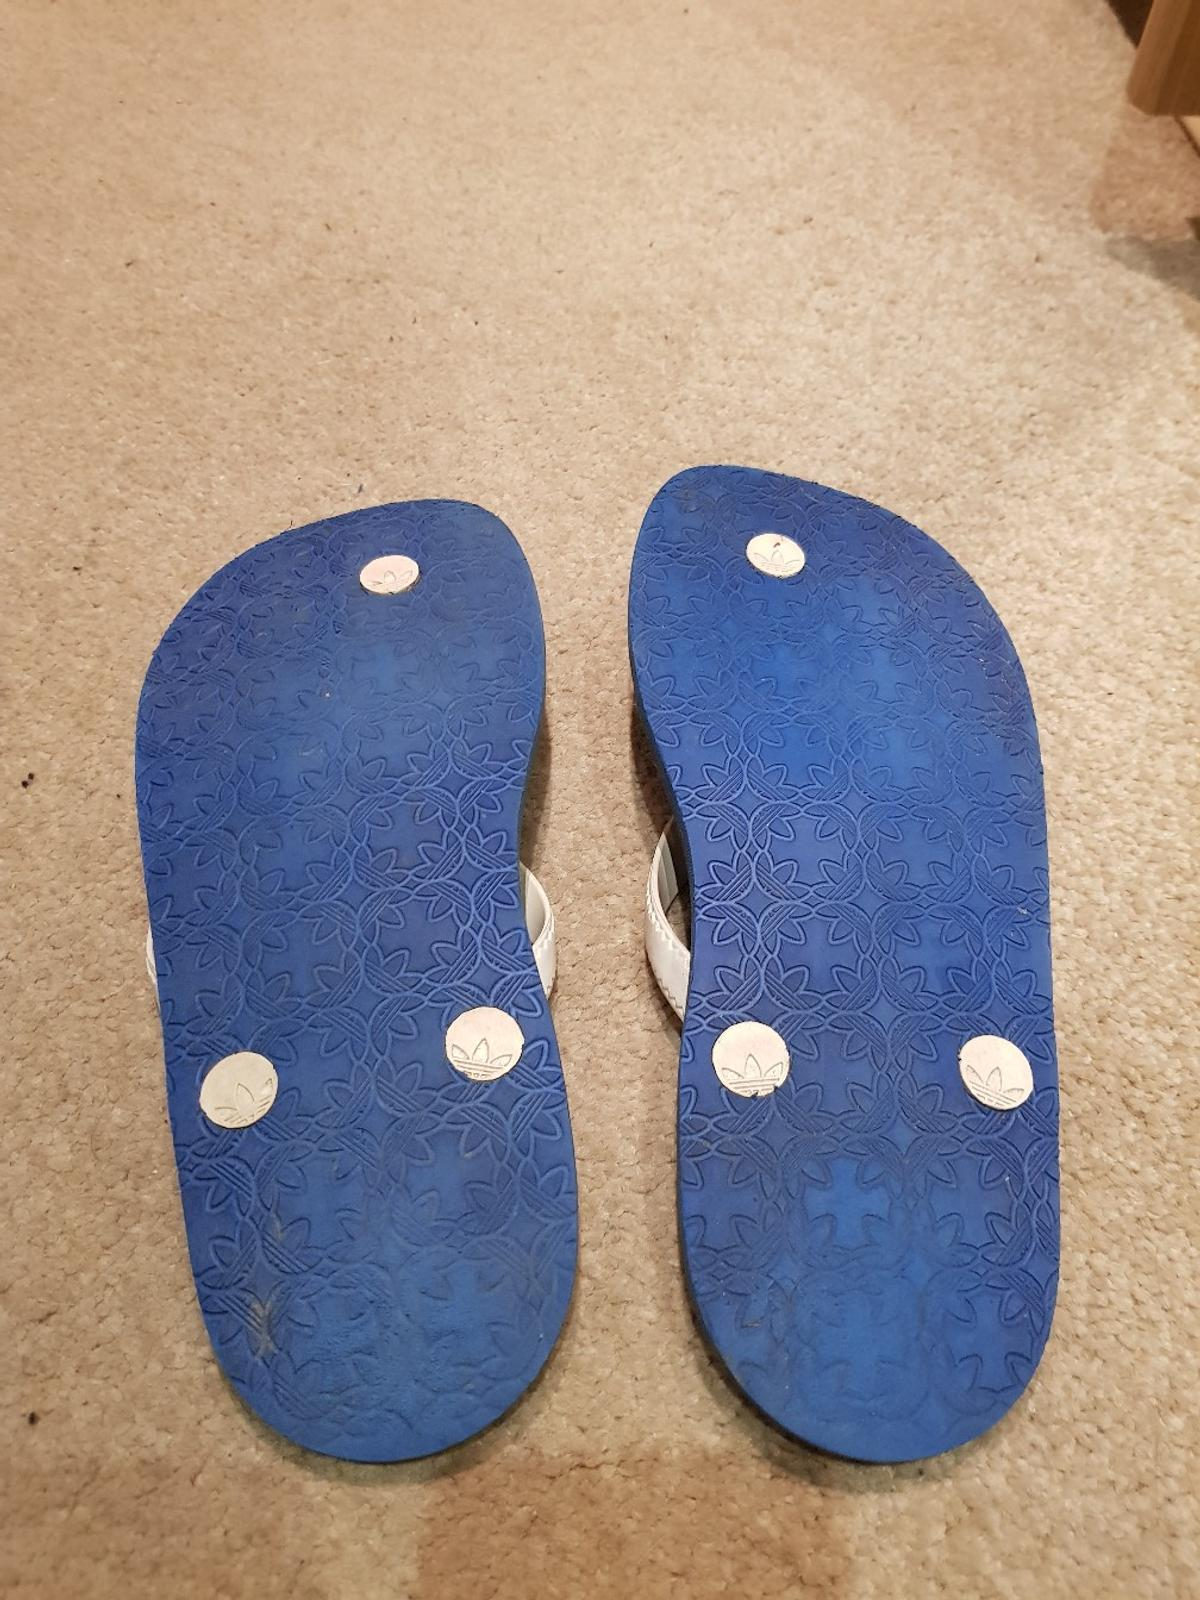 34f4d3494 Adidas flip flops size 5 in Ashfield for £2.00 for sale - Shpock